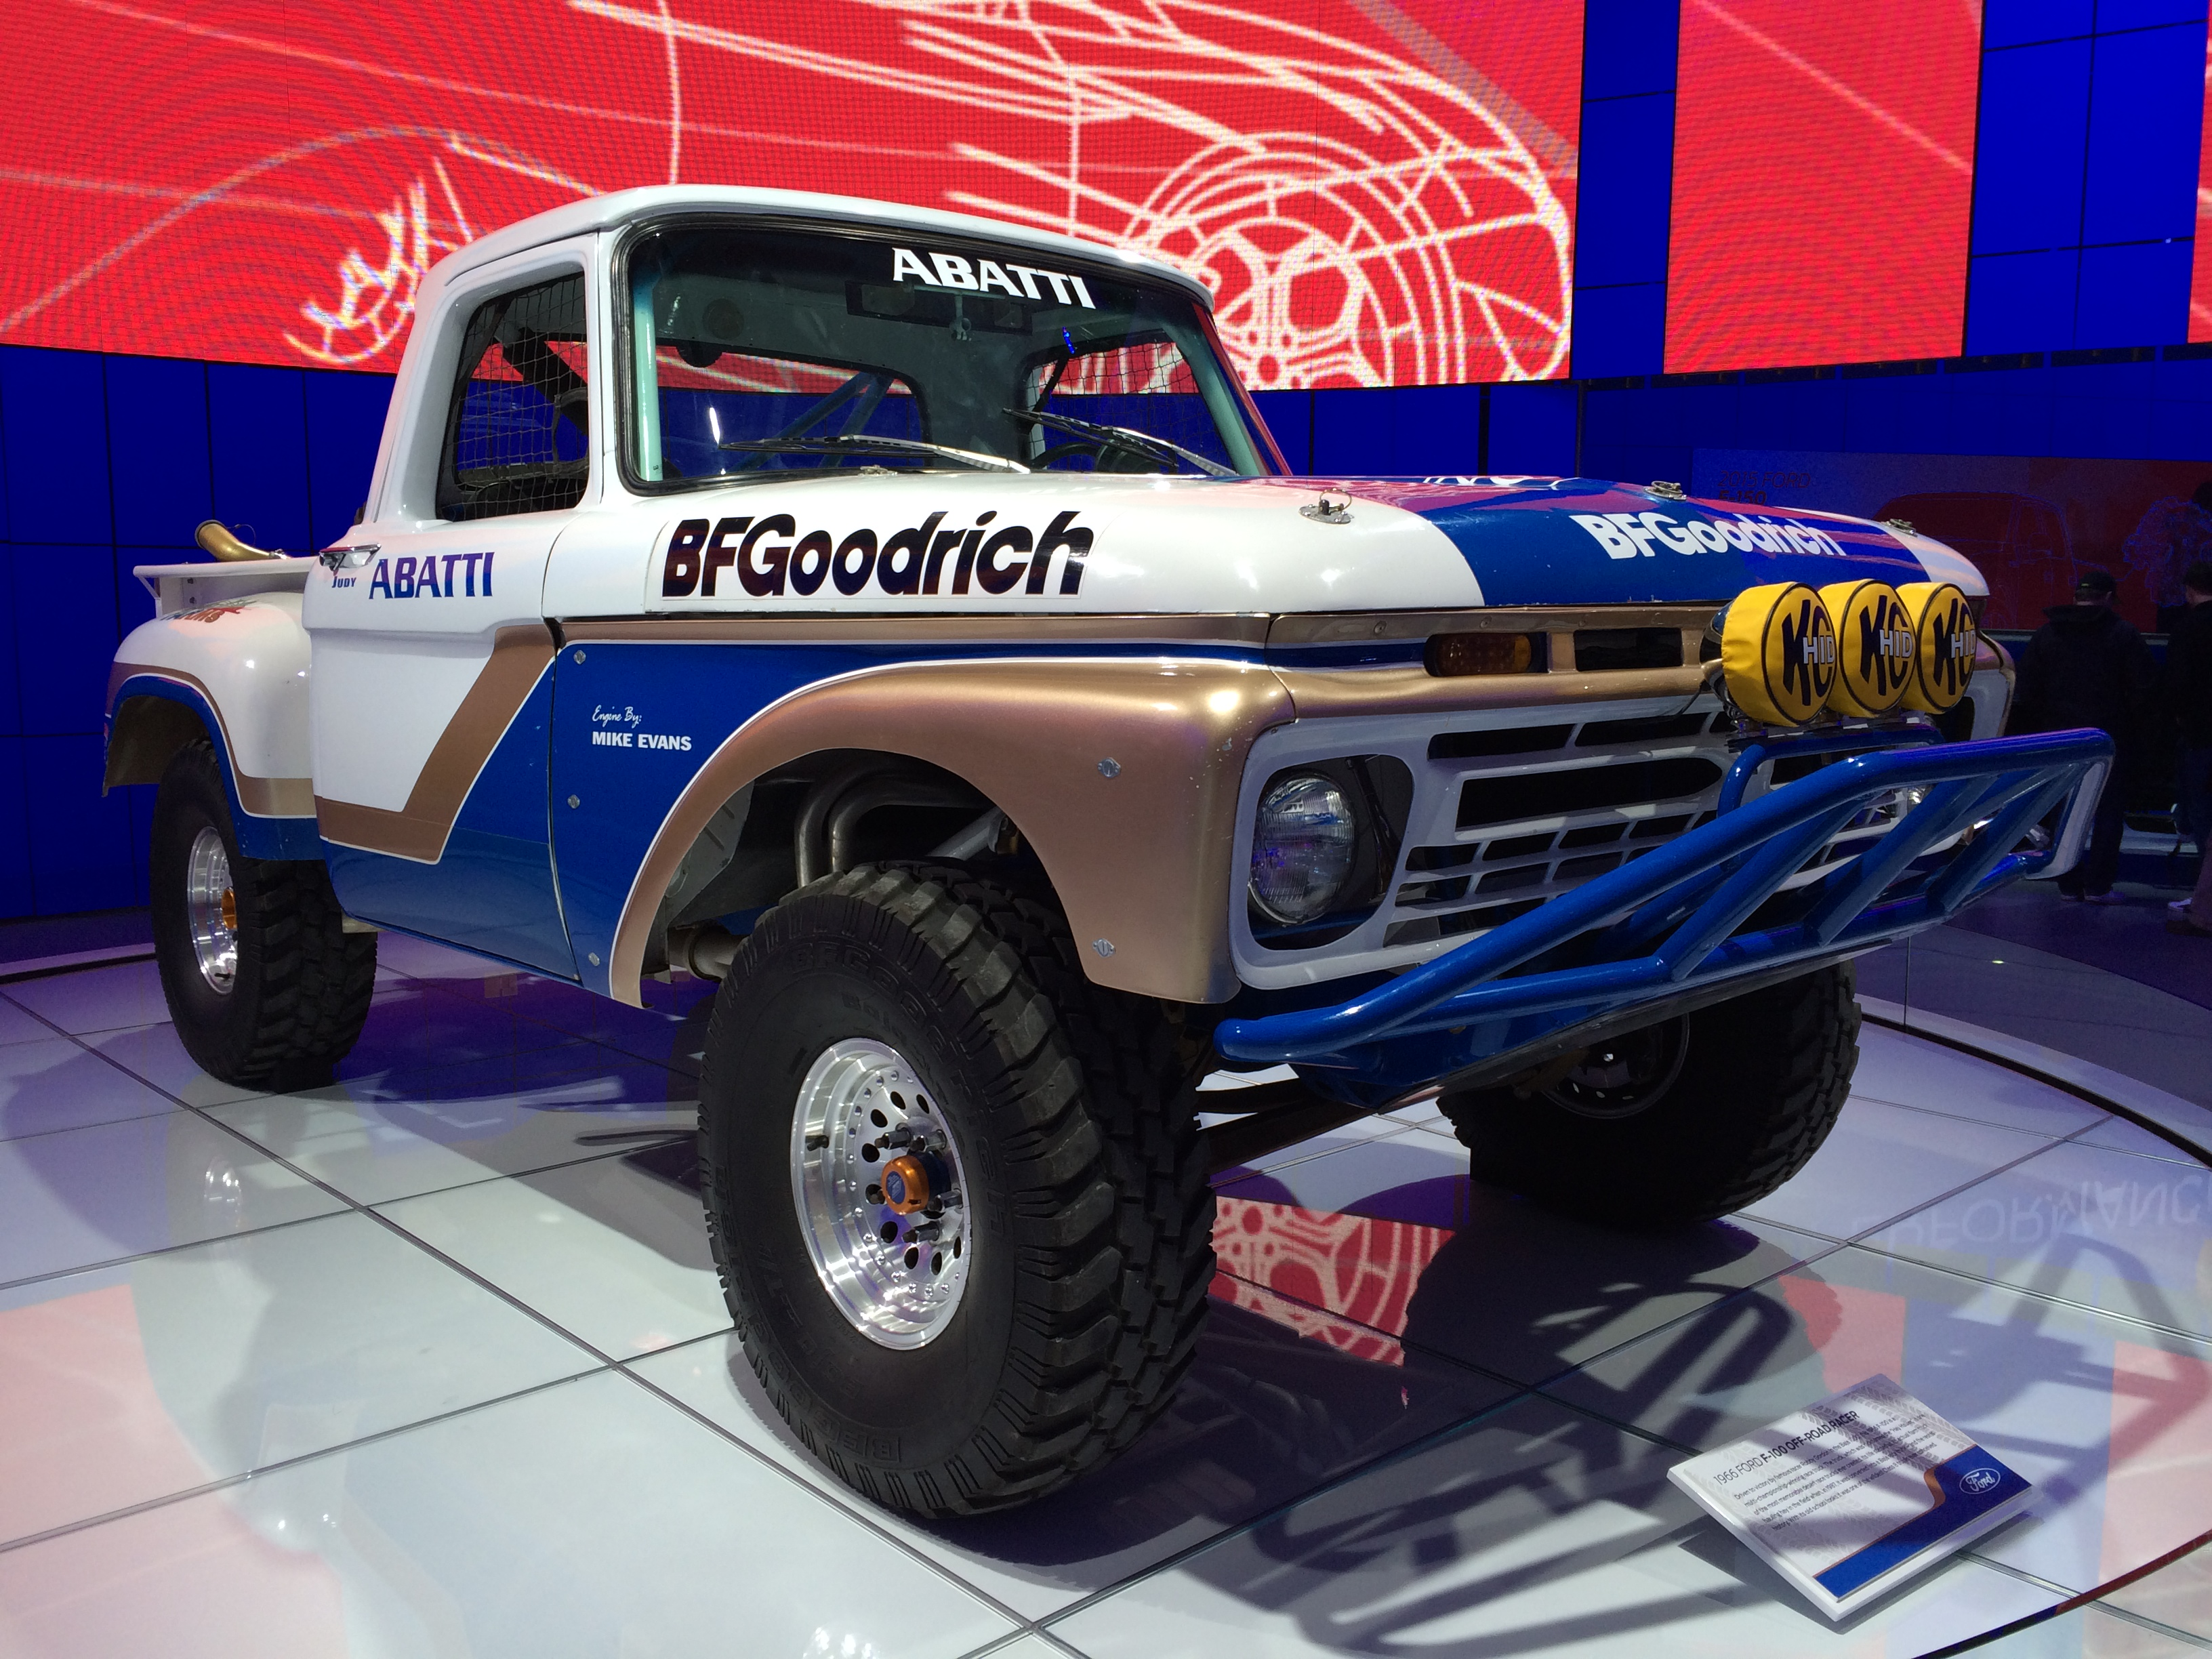 1966 Ford F100 Rally Off-Road Truck by AirJordanSwag on DeviantArt